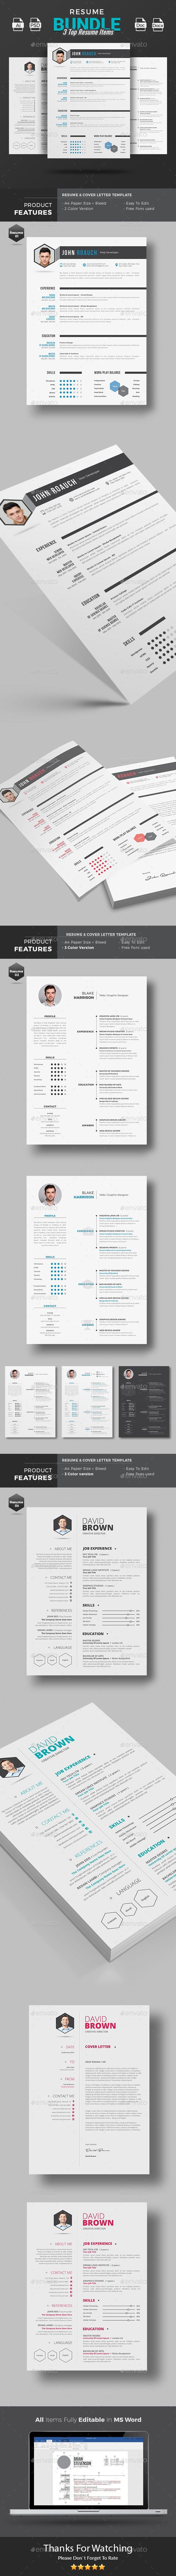 Great 1 Page Resume Format Free Download Thin 10 Envelope Template Flat 15 Year Old Resume Sample 18th Invitation Templates Youthful 1and1 Templates Coloured2 Binder Spine Template 25  Best Ideas About Cv Format In Word On Pinterest | Creative Cv ..